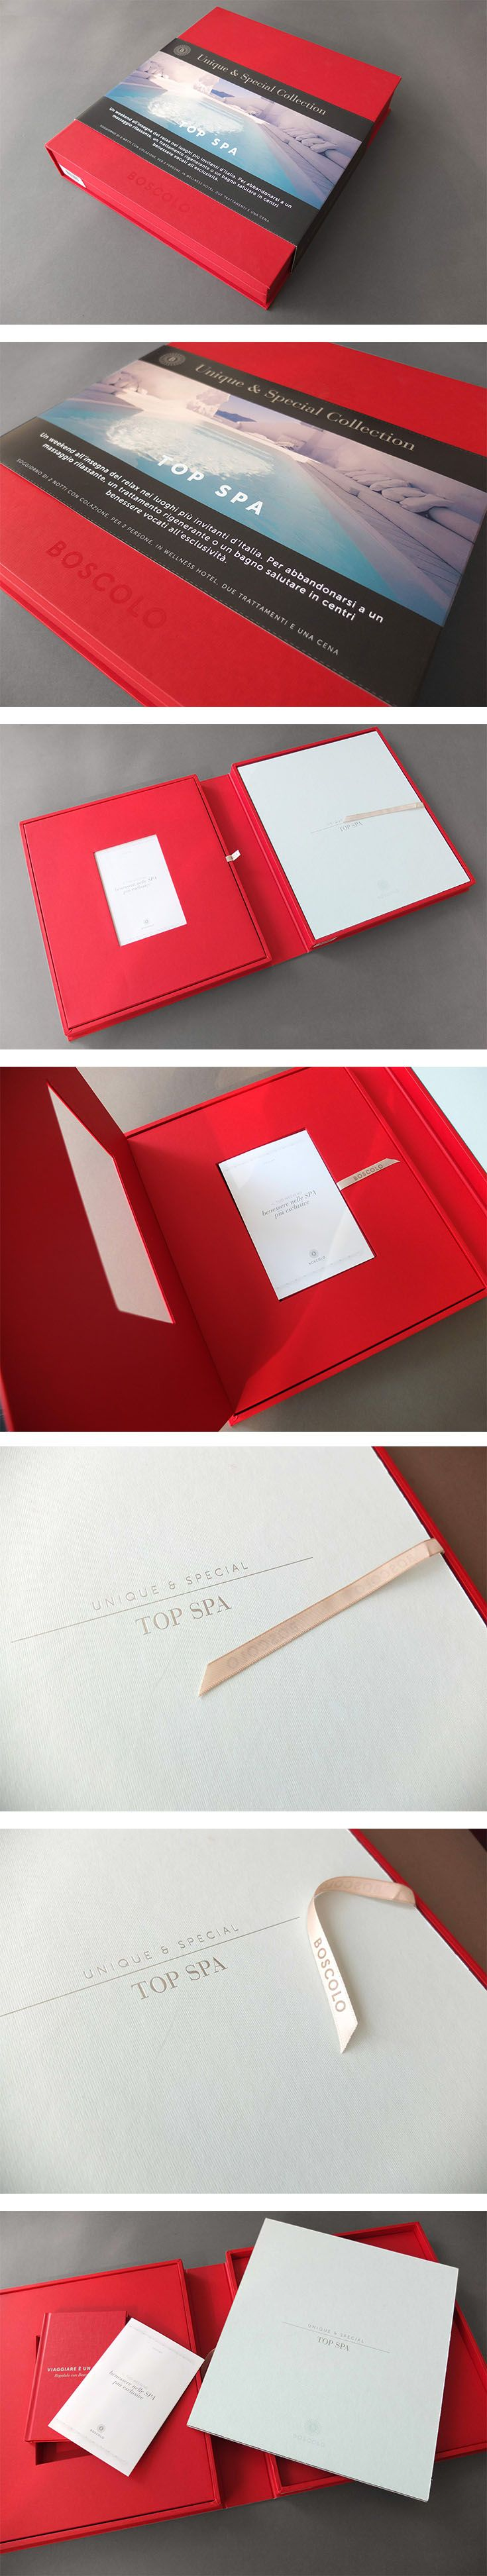 Gift Boscolo, un progetto #effADV - Gift Boscolo, effADV project - #packaging